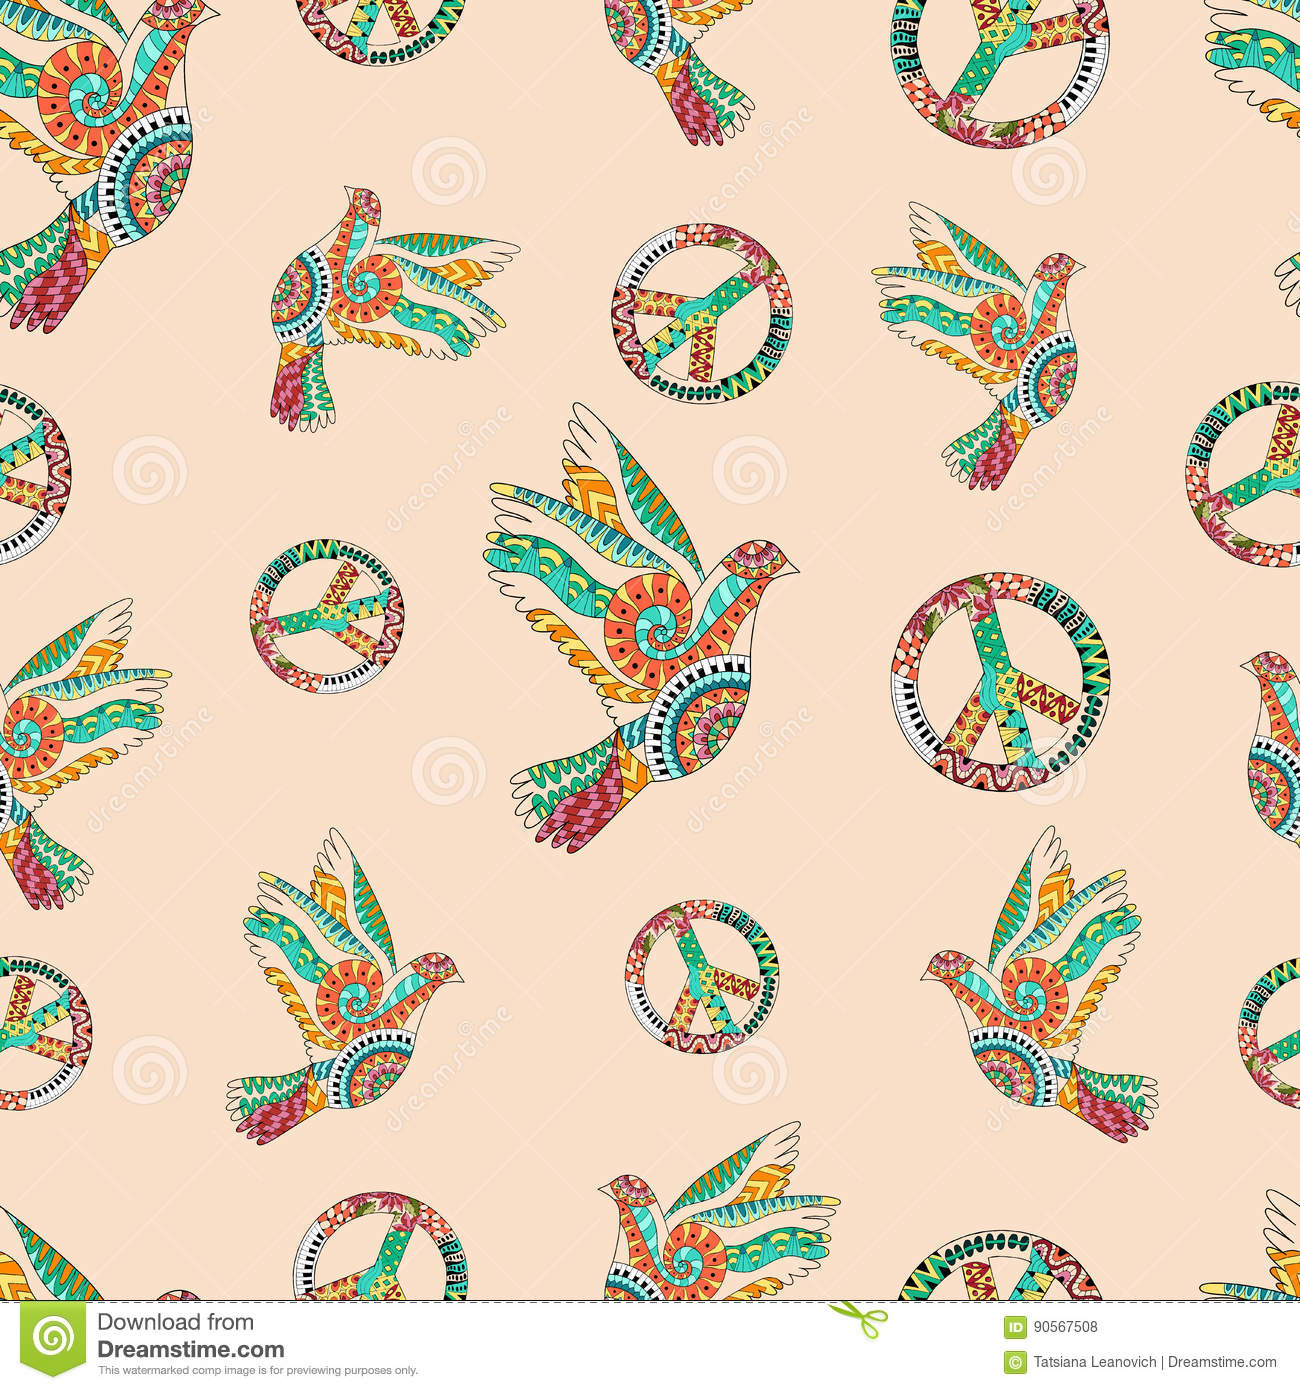 Hand drawn flying doves and sign peace. Hippie wallpaper.